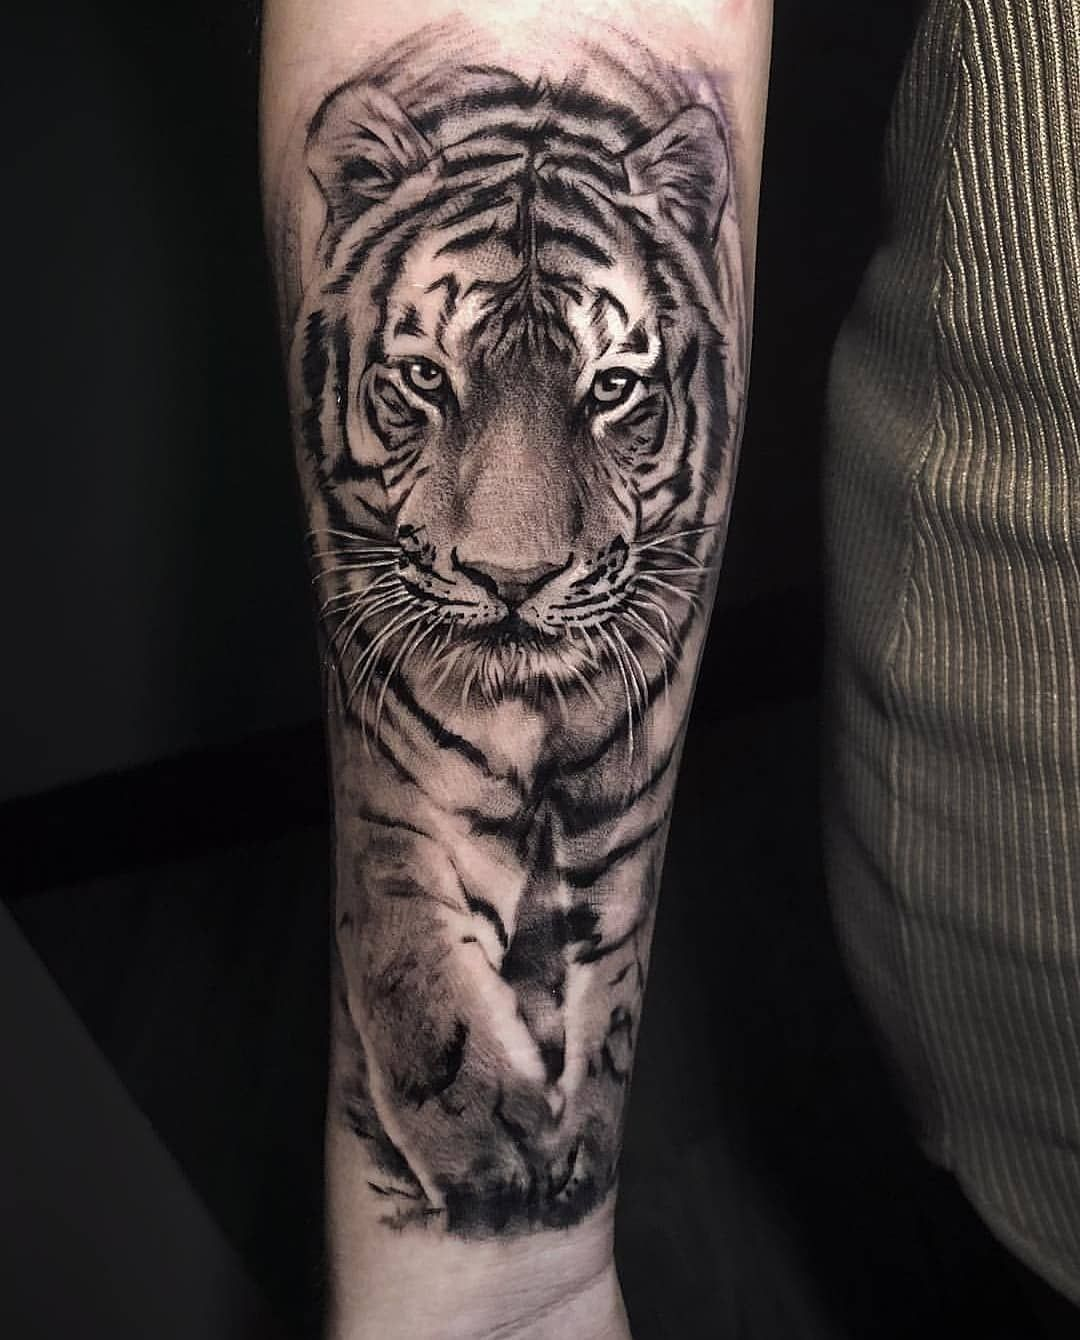 Tiger🐯🐯🐯 tattoo by shine_tattoos Shine tattoo, Mens